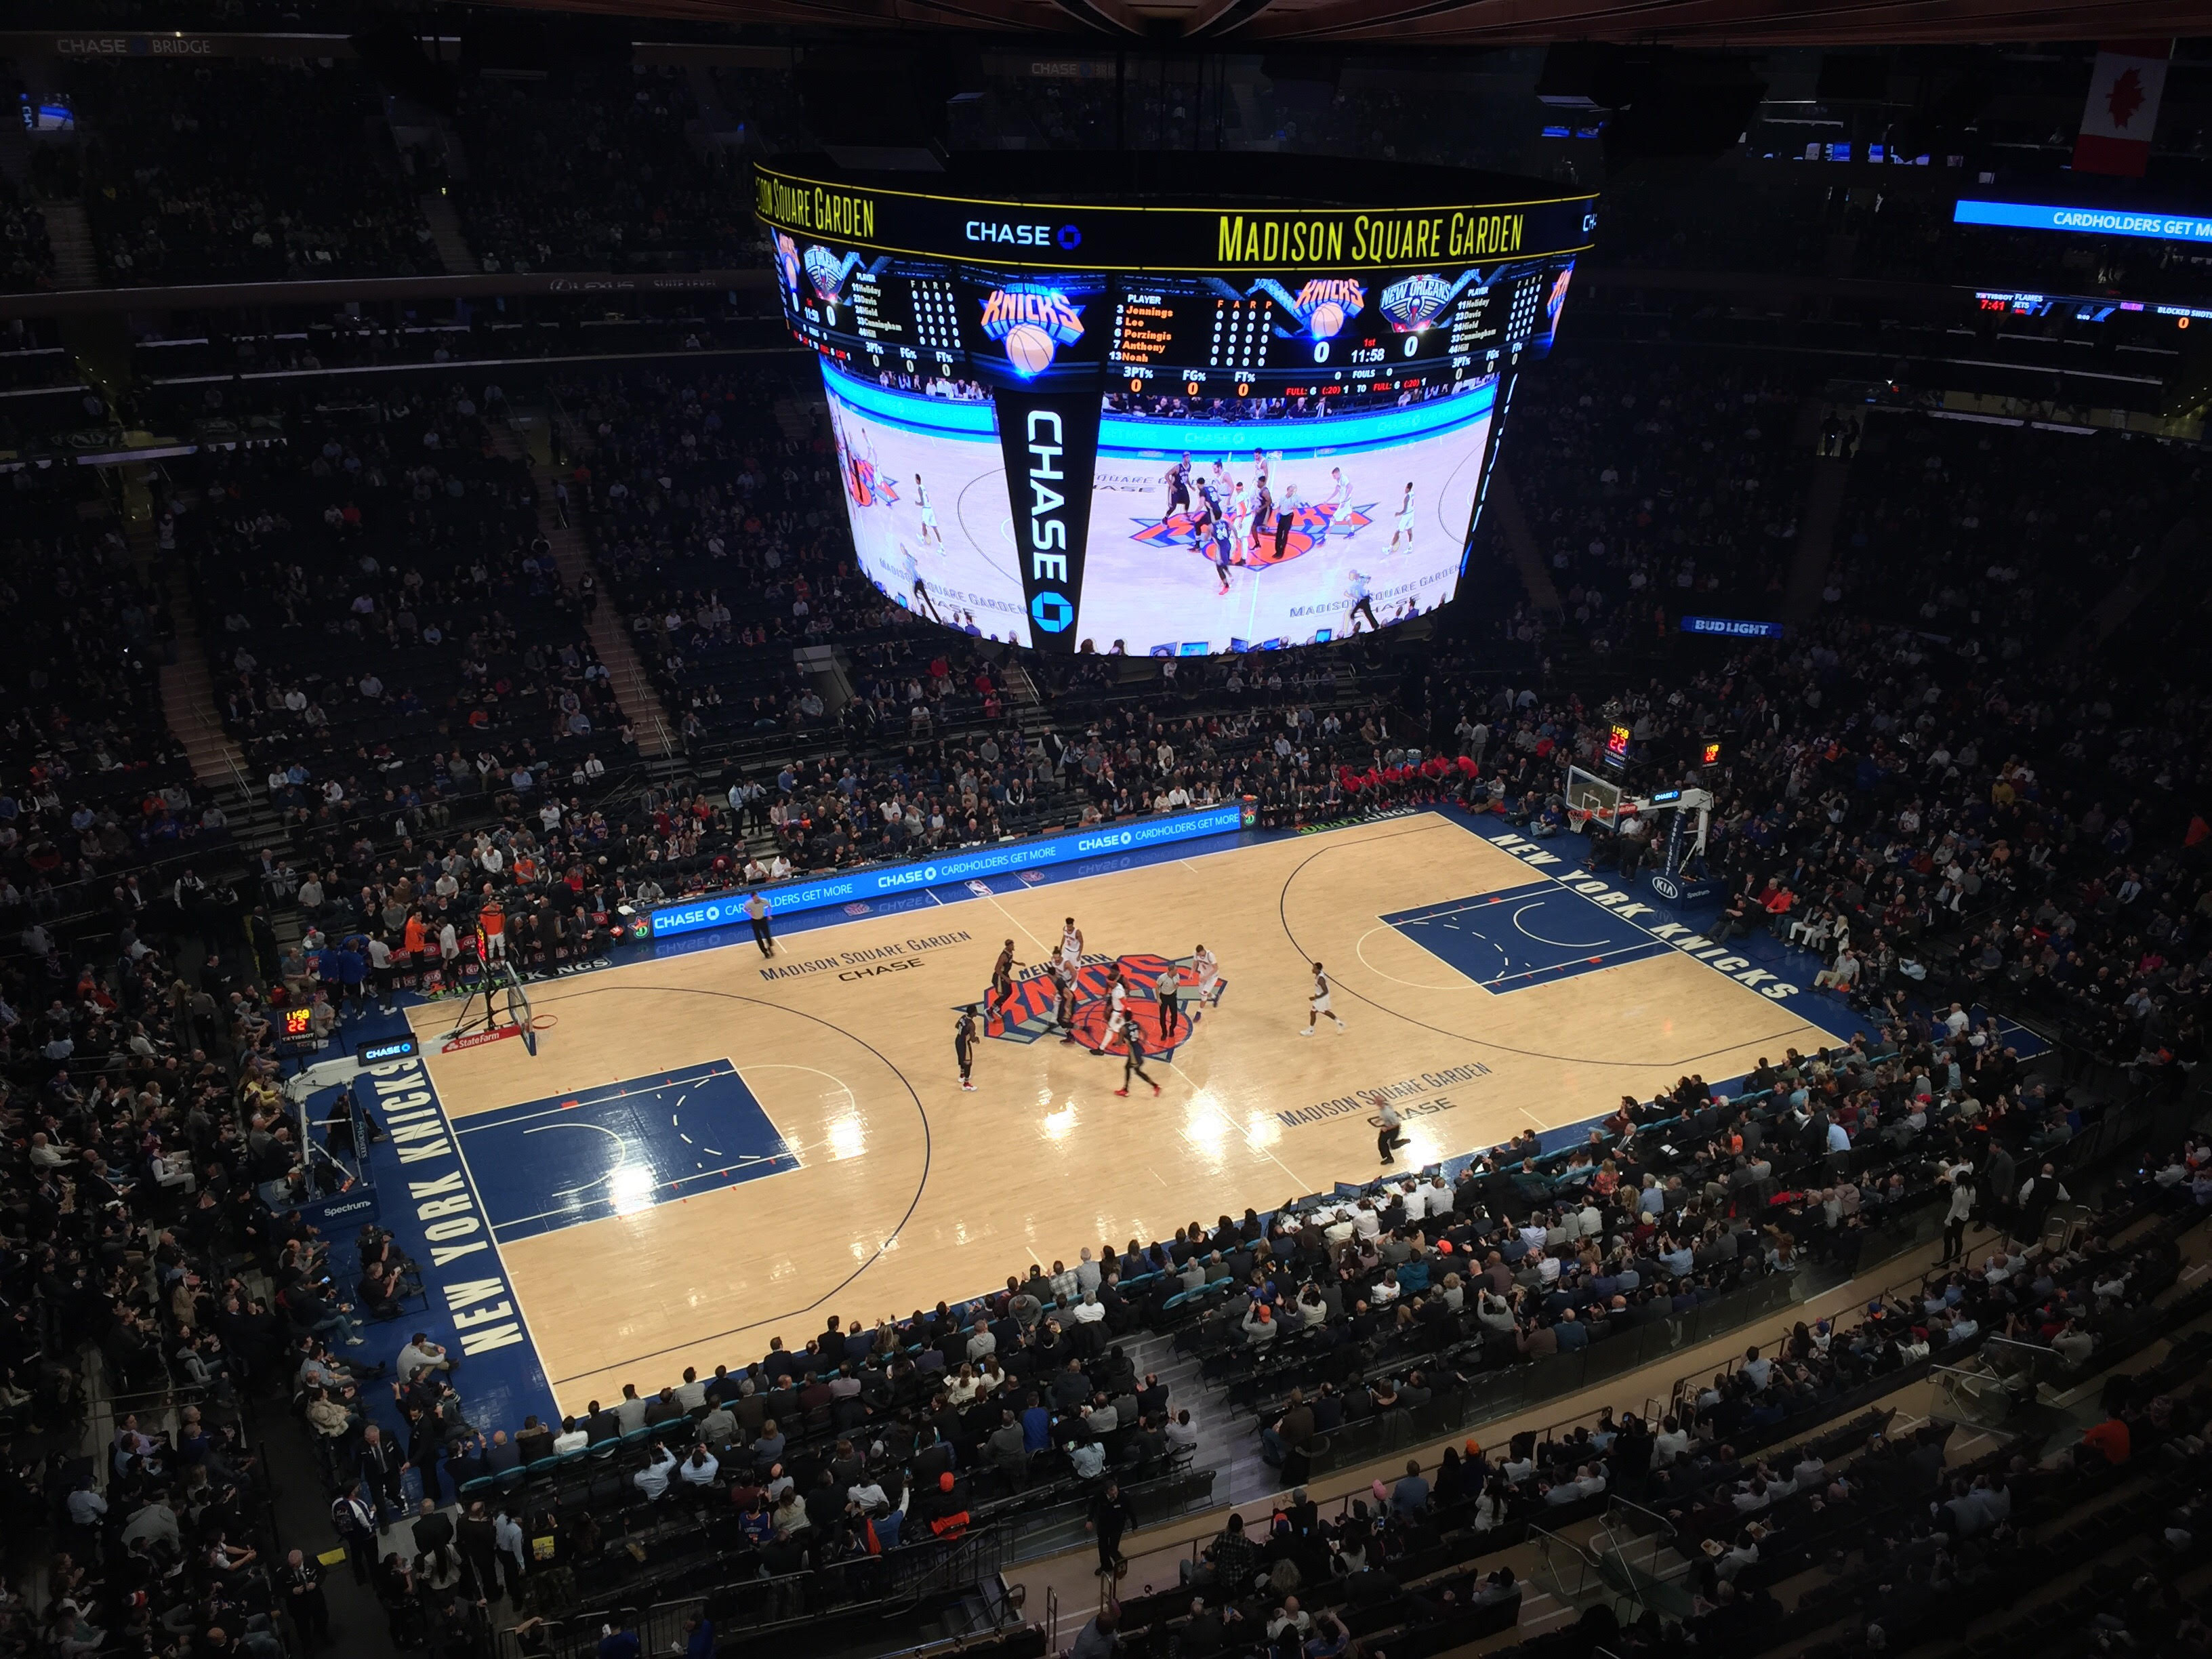 Madison Square Garden, Interior